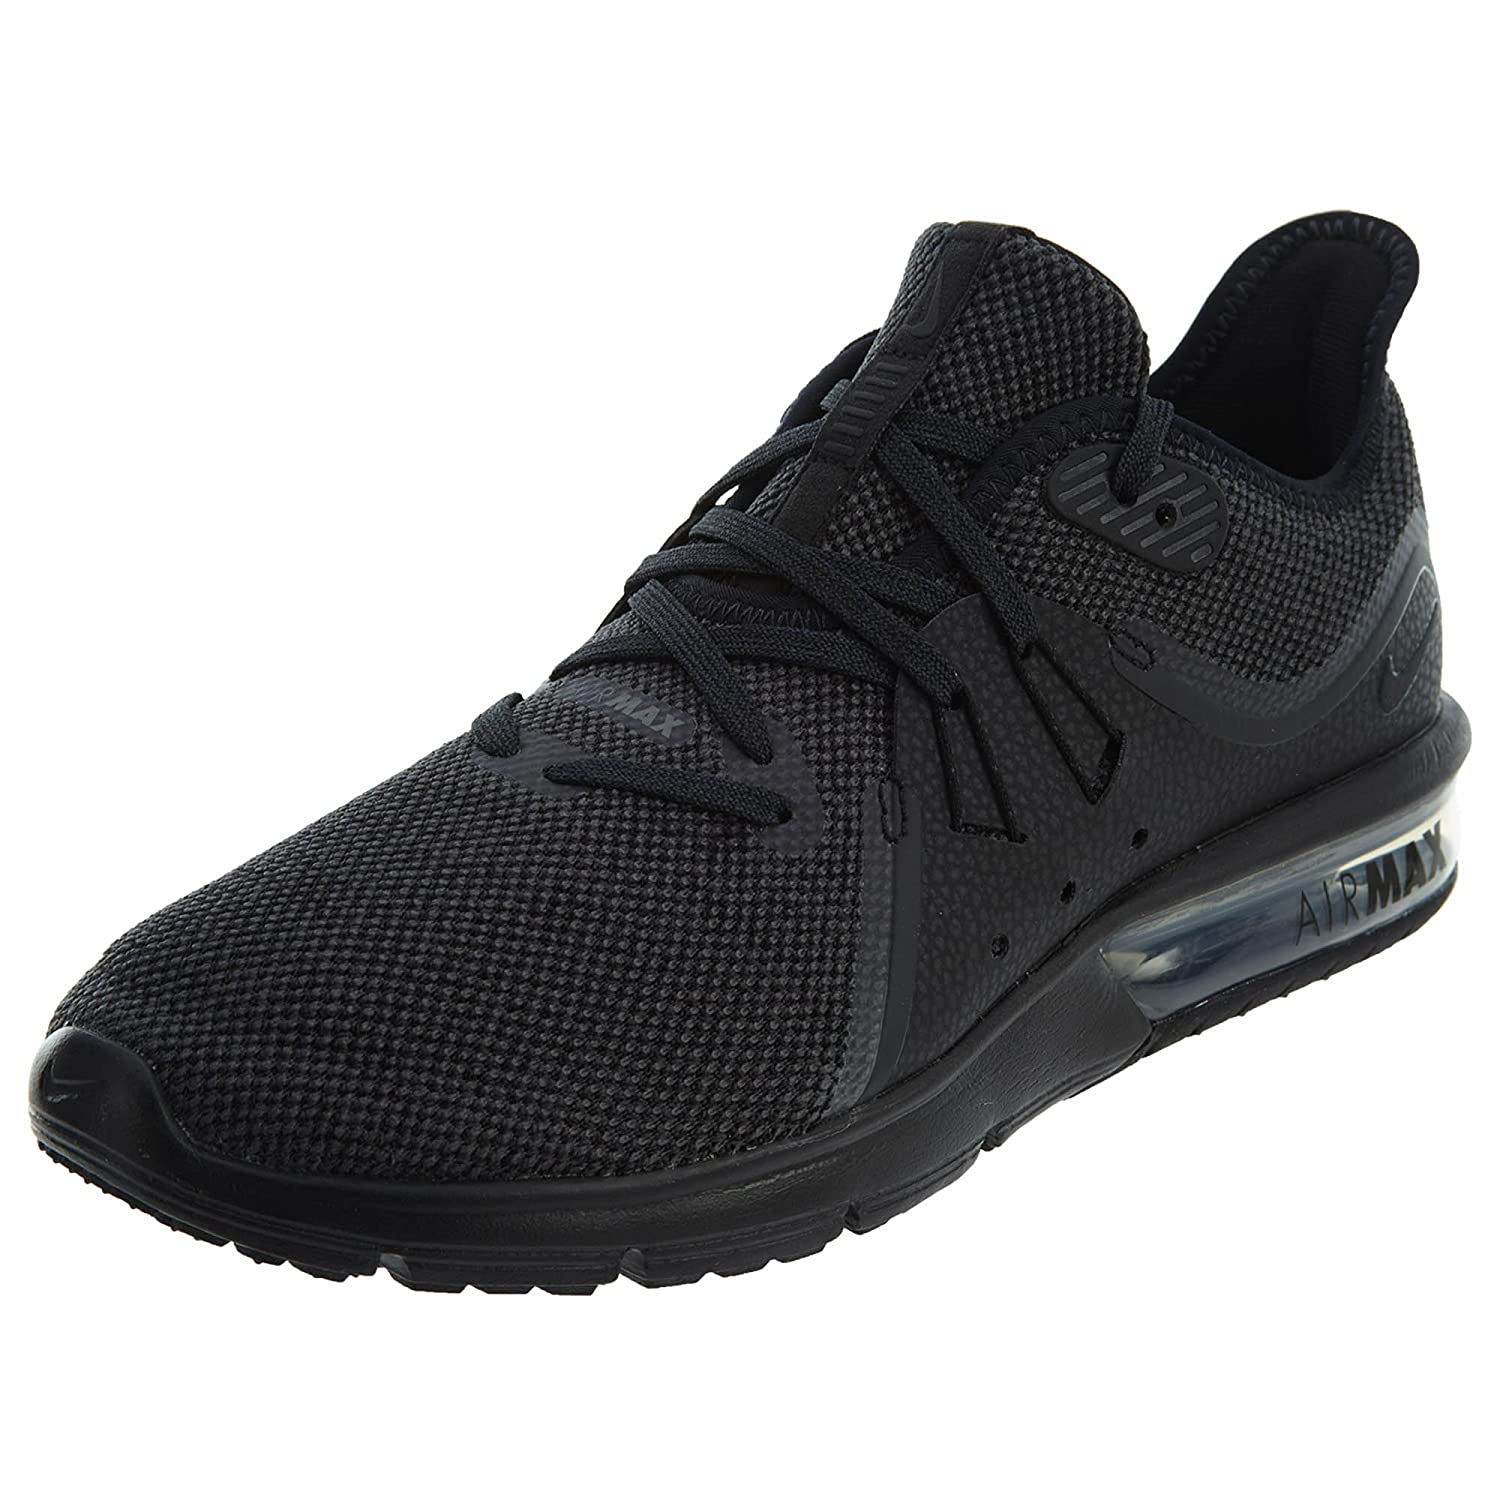 NIKE Women's Air Max Sequent 3 Running Shoe B06XV25MZY 7.5 B(M) US|Black/Anthracite